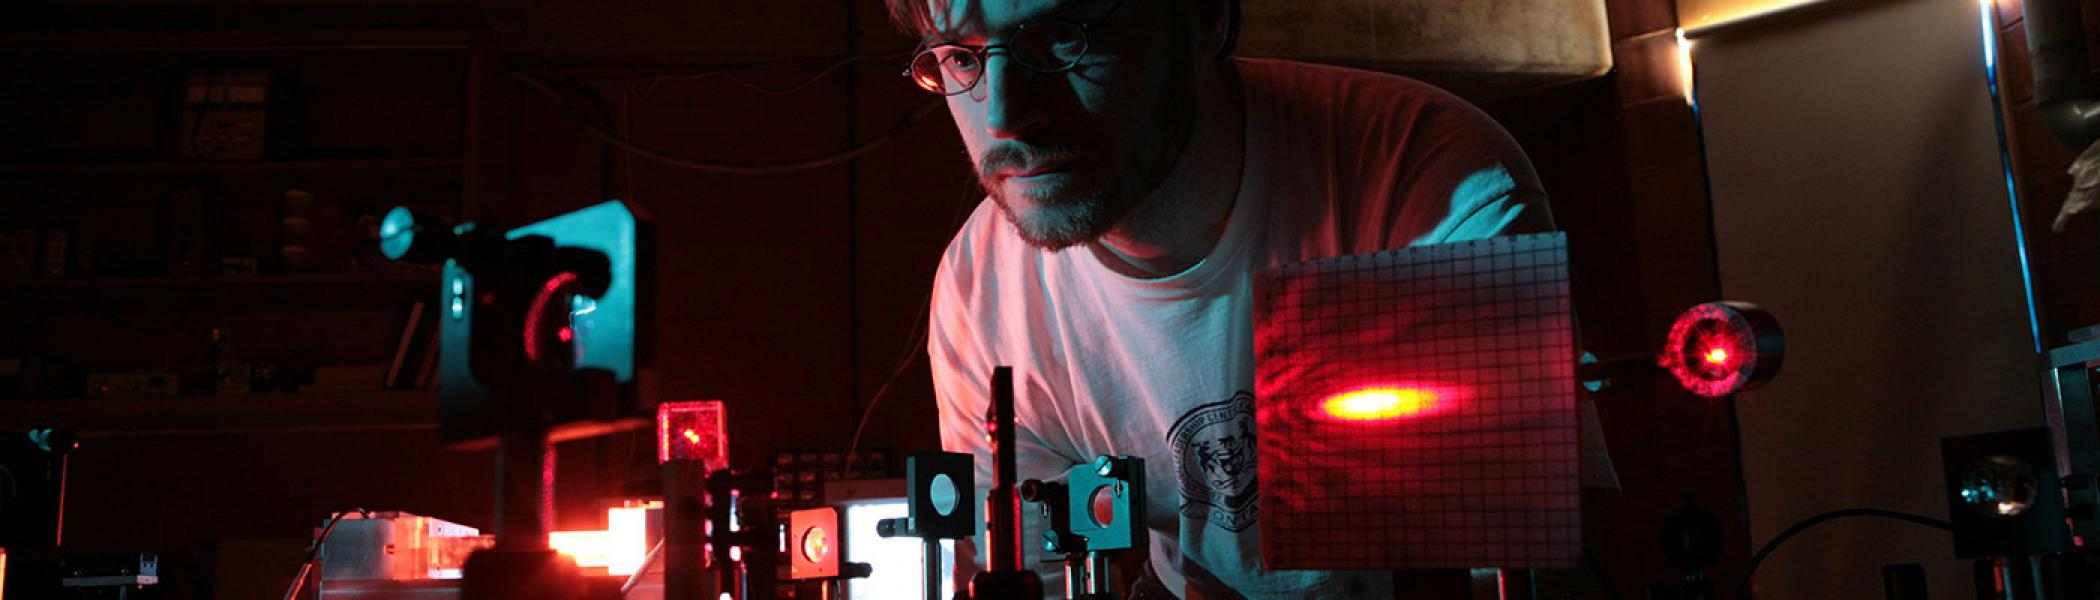 Student using lasers and other instruments in Trent's Centre for Materials Research